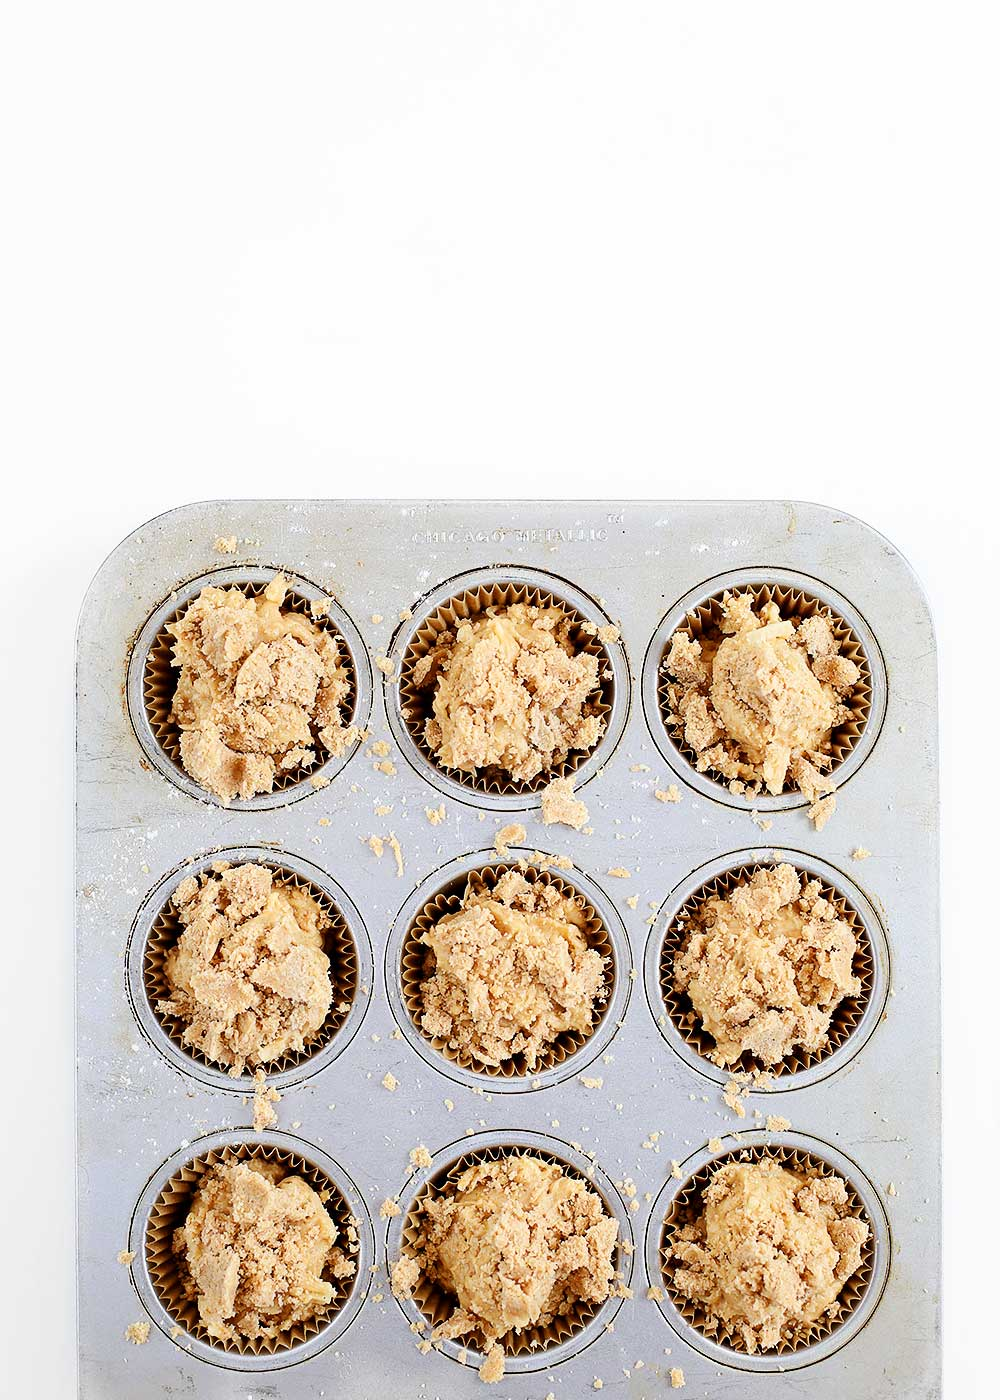 Apple Crumb Muffins from The Fauxmartha